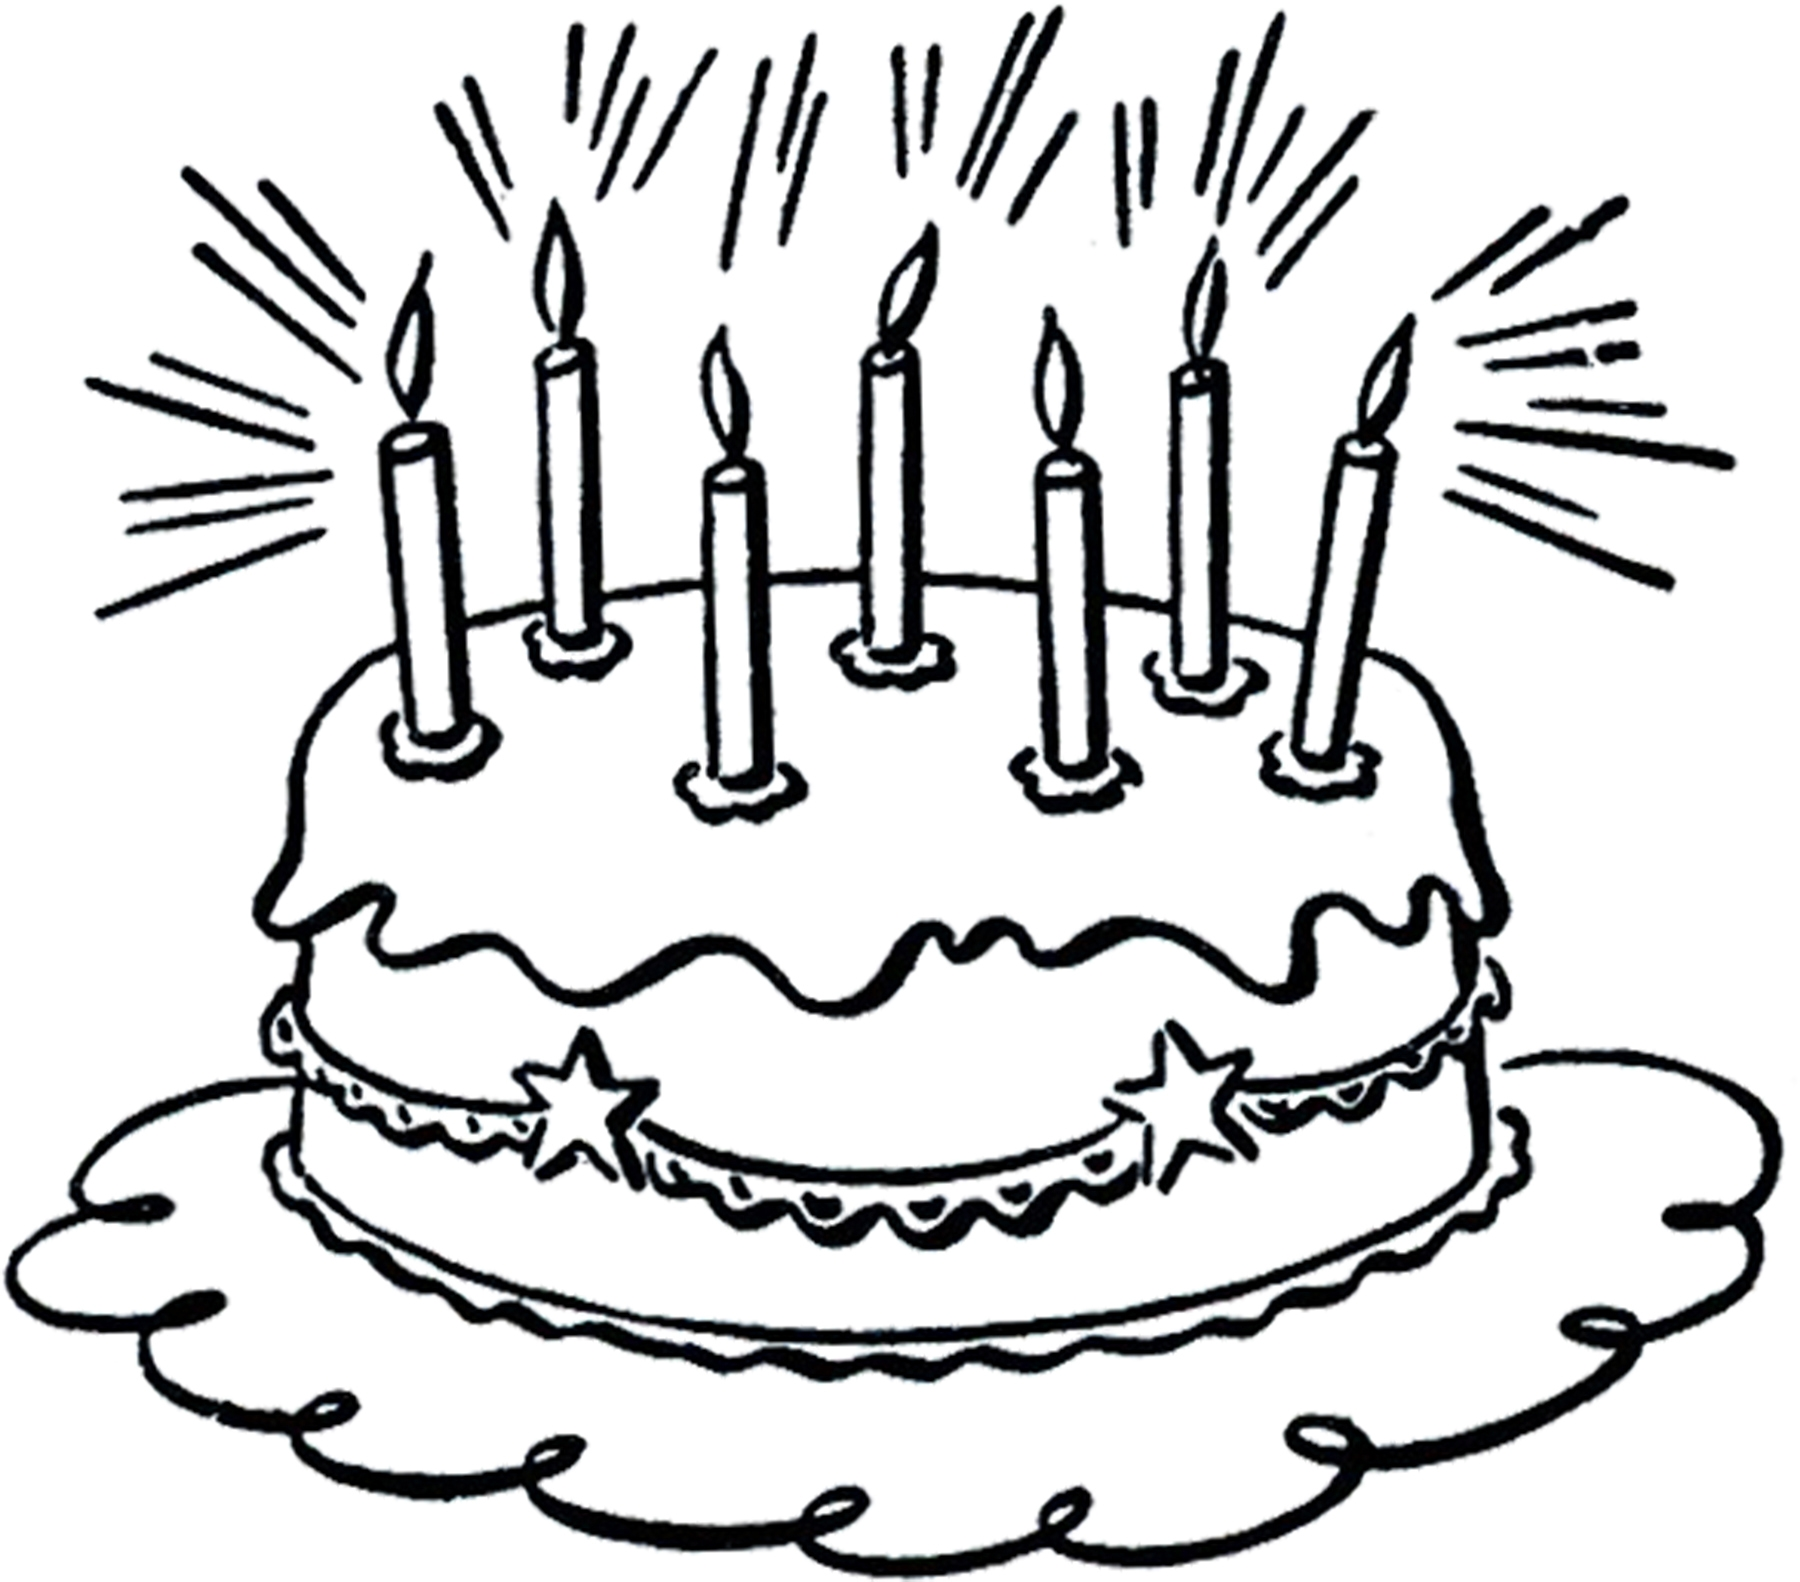 Free Birthday Cake Clip Art Black And White, Download Free Clip Art ... image transparent library